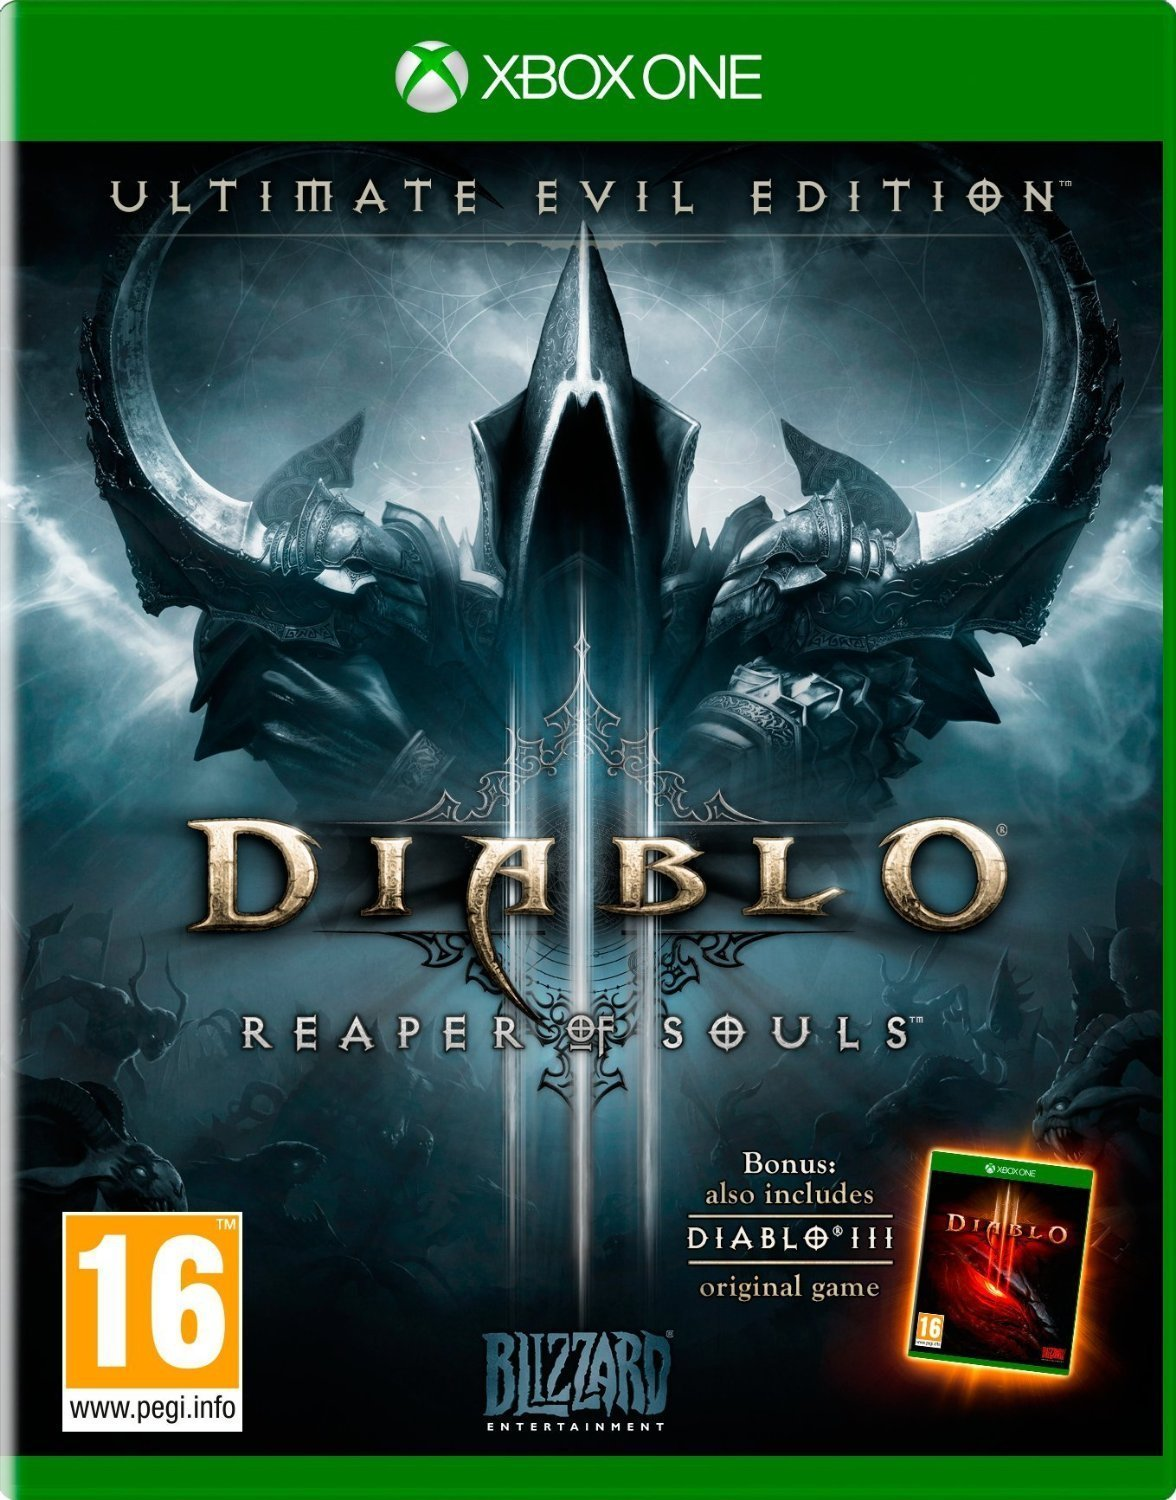 Amazon diablo iii reaper of souls ultimate evil edition diablo iii reaper of souls ultimate evil edition xbox one by blizzard entertainment sciox Choice Image